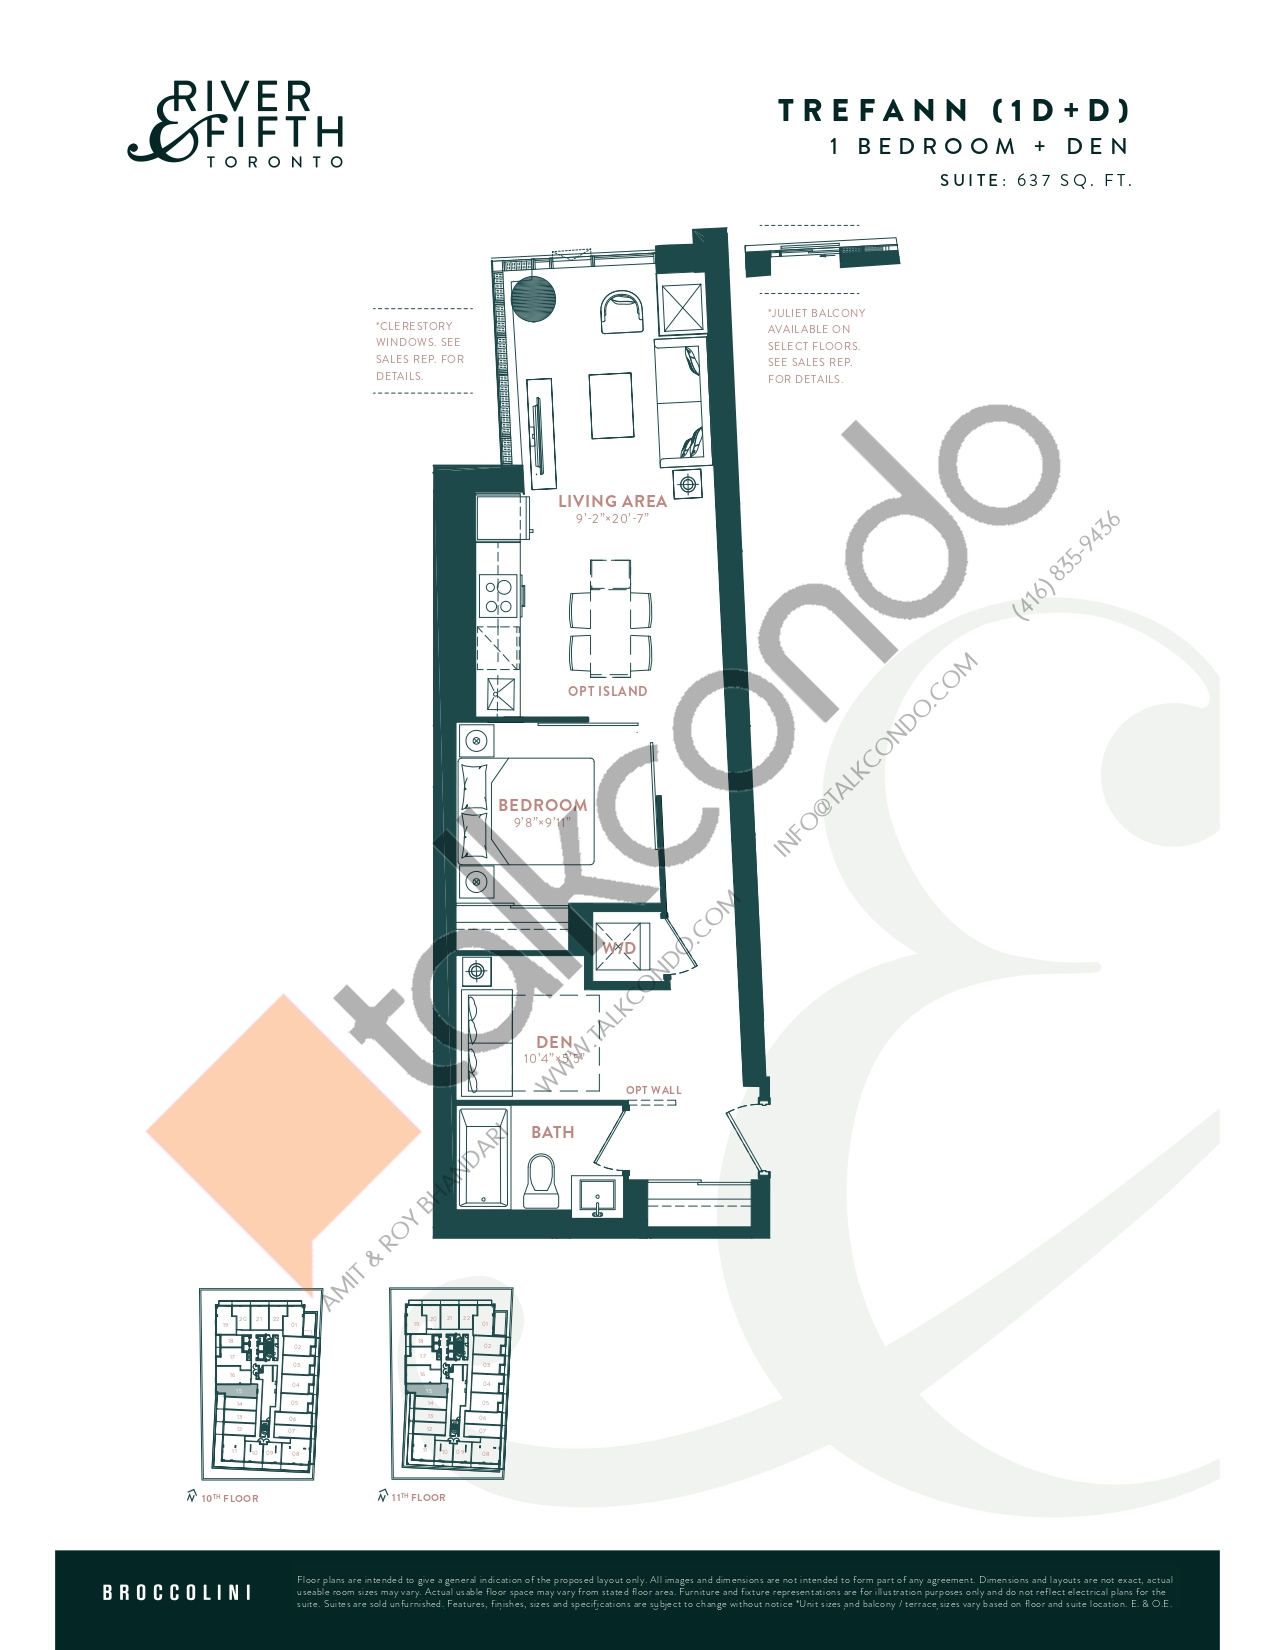 Trefann (1D+D) Floor Plan at River & Fifth Condos - 637 sq.ft